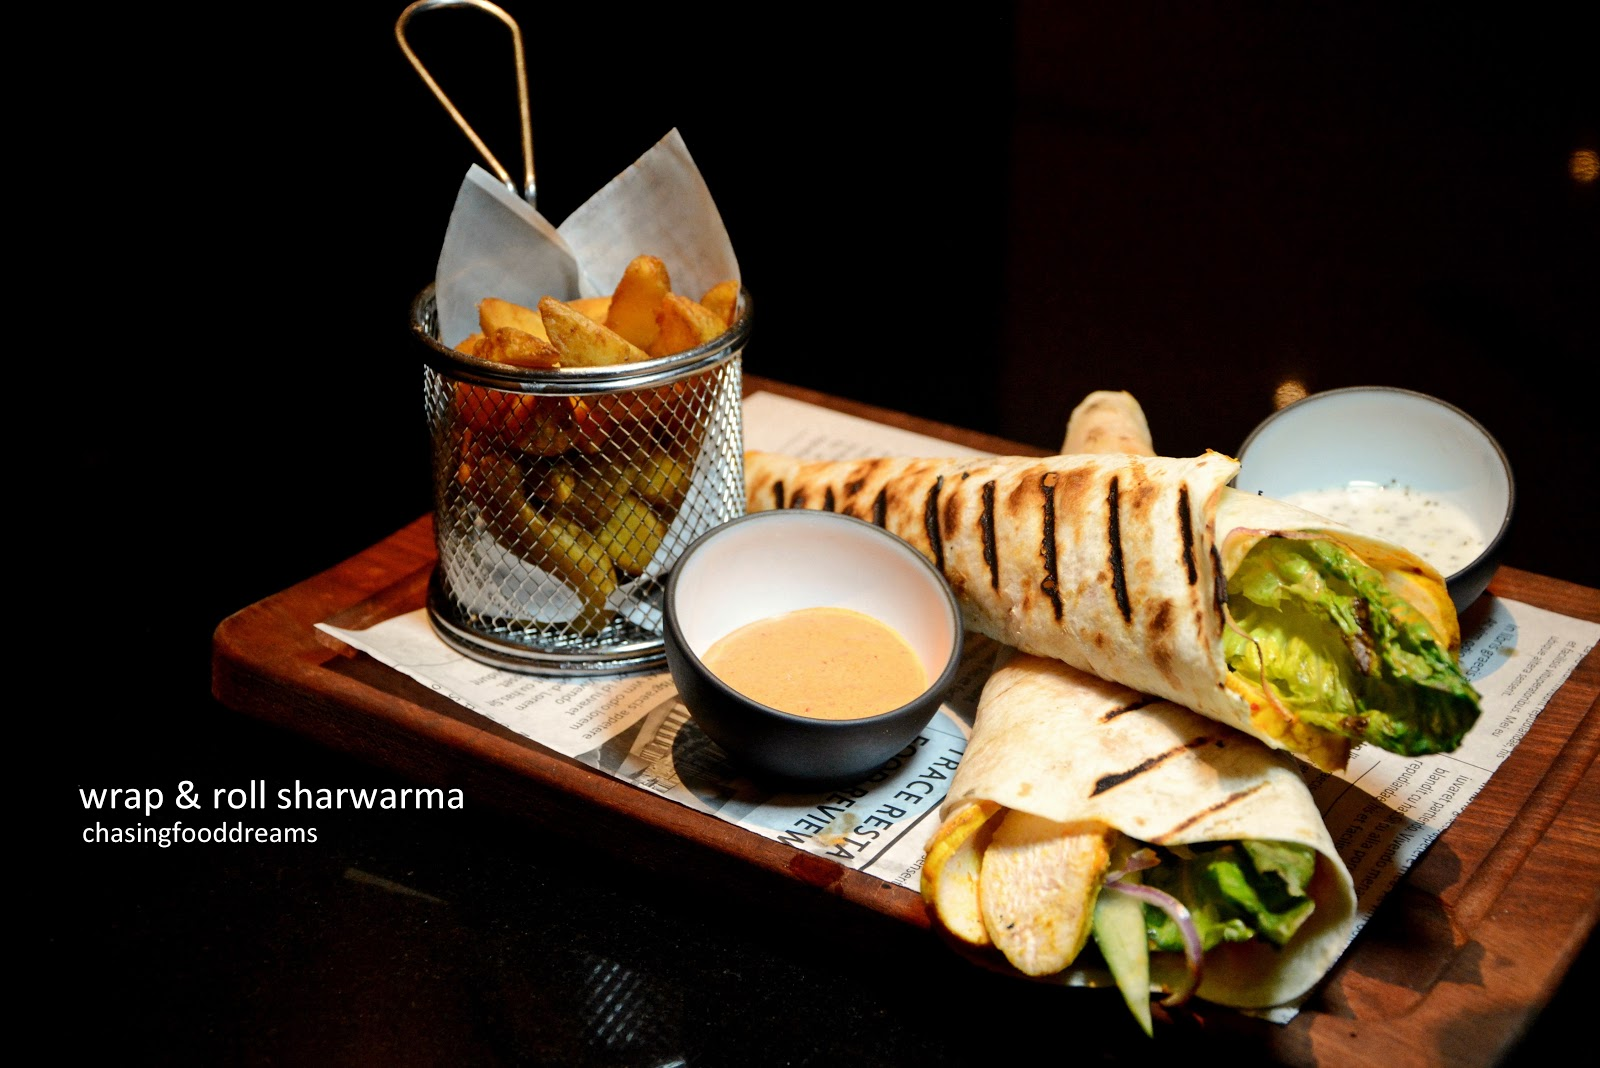 Chasing Food Dreams Trace Restaurant And Bar Element Kuala Lumpur Shrimp Roll Bento Isi 10 For A Single Light Meal The Wrap Sharwarma Rm32 Is Your Best Bet Thin Sliced Roasted Chicken Breast With Salad Greens Cucumber Onion